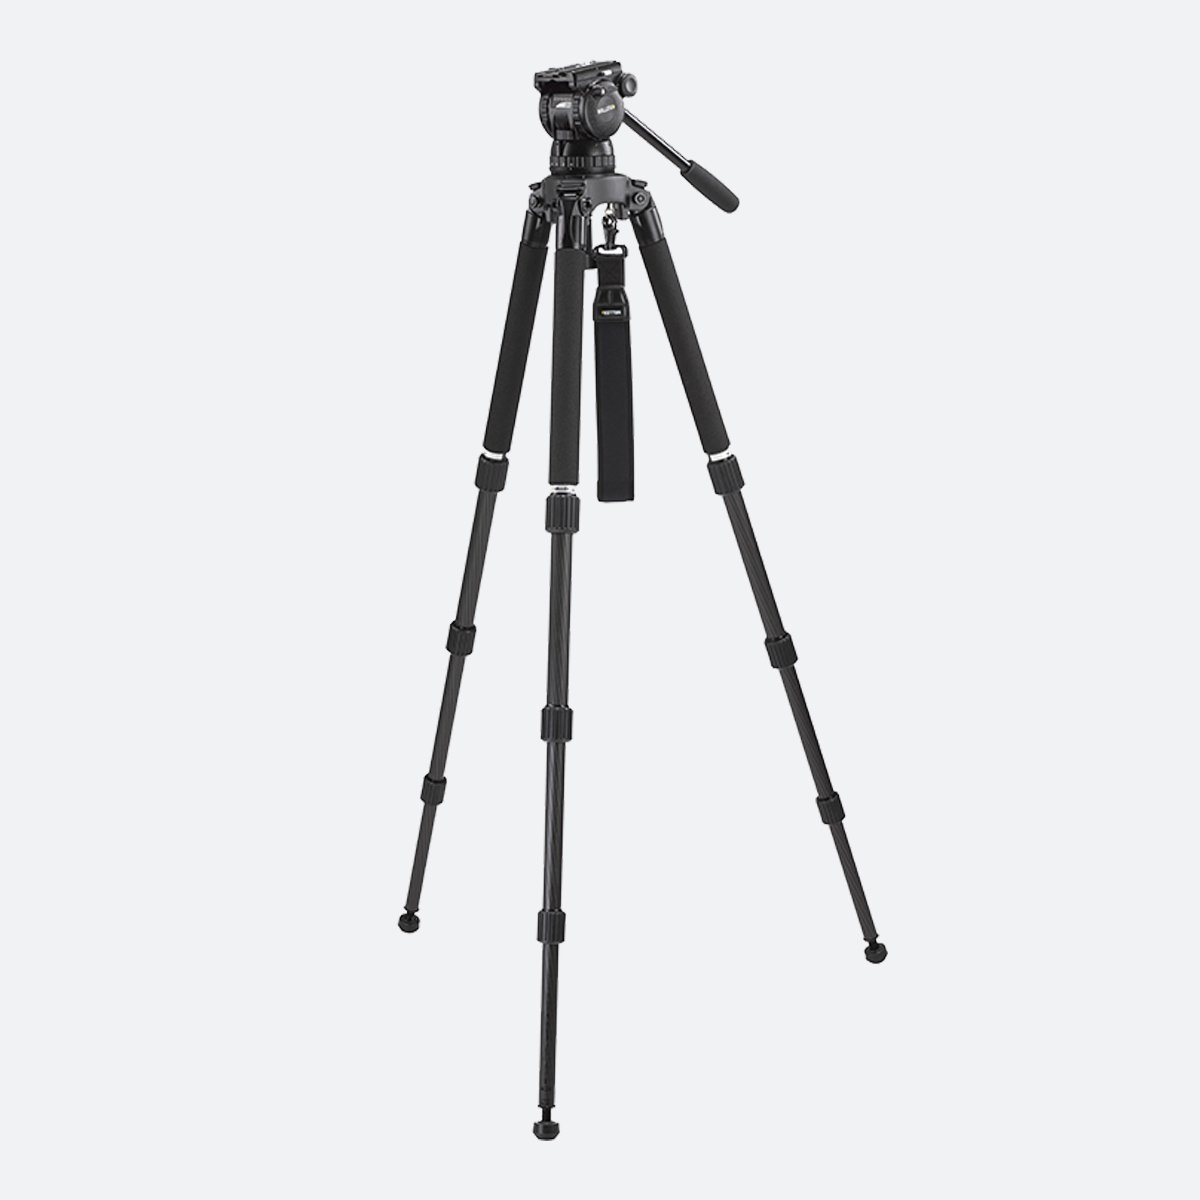 Miller 1866 Compass 23 Solo 3-Stage CF Tripod System